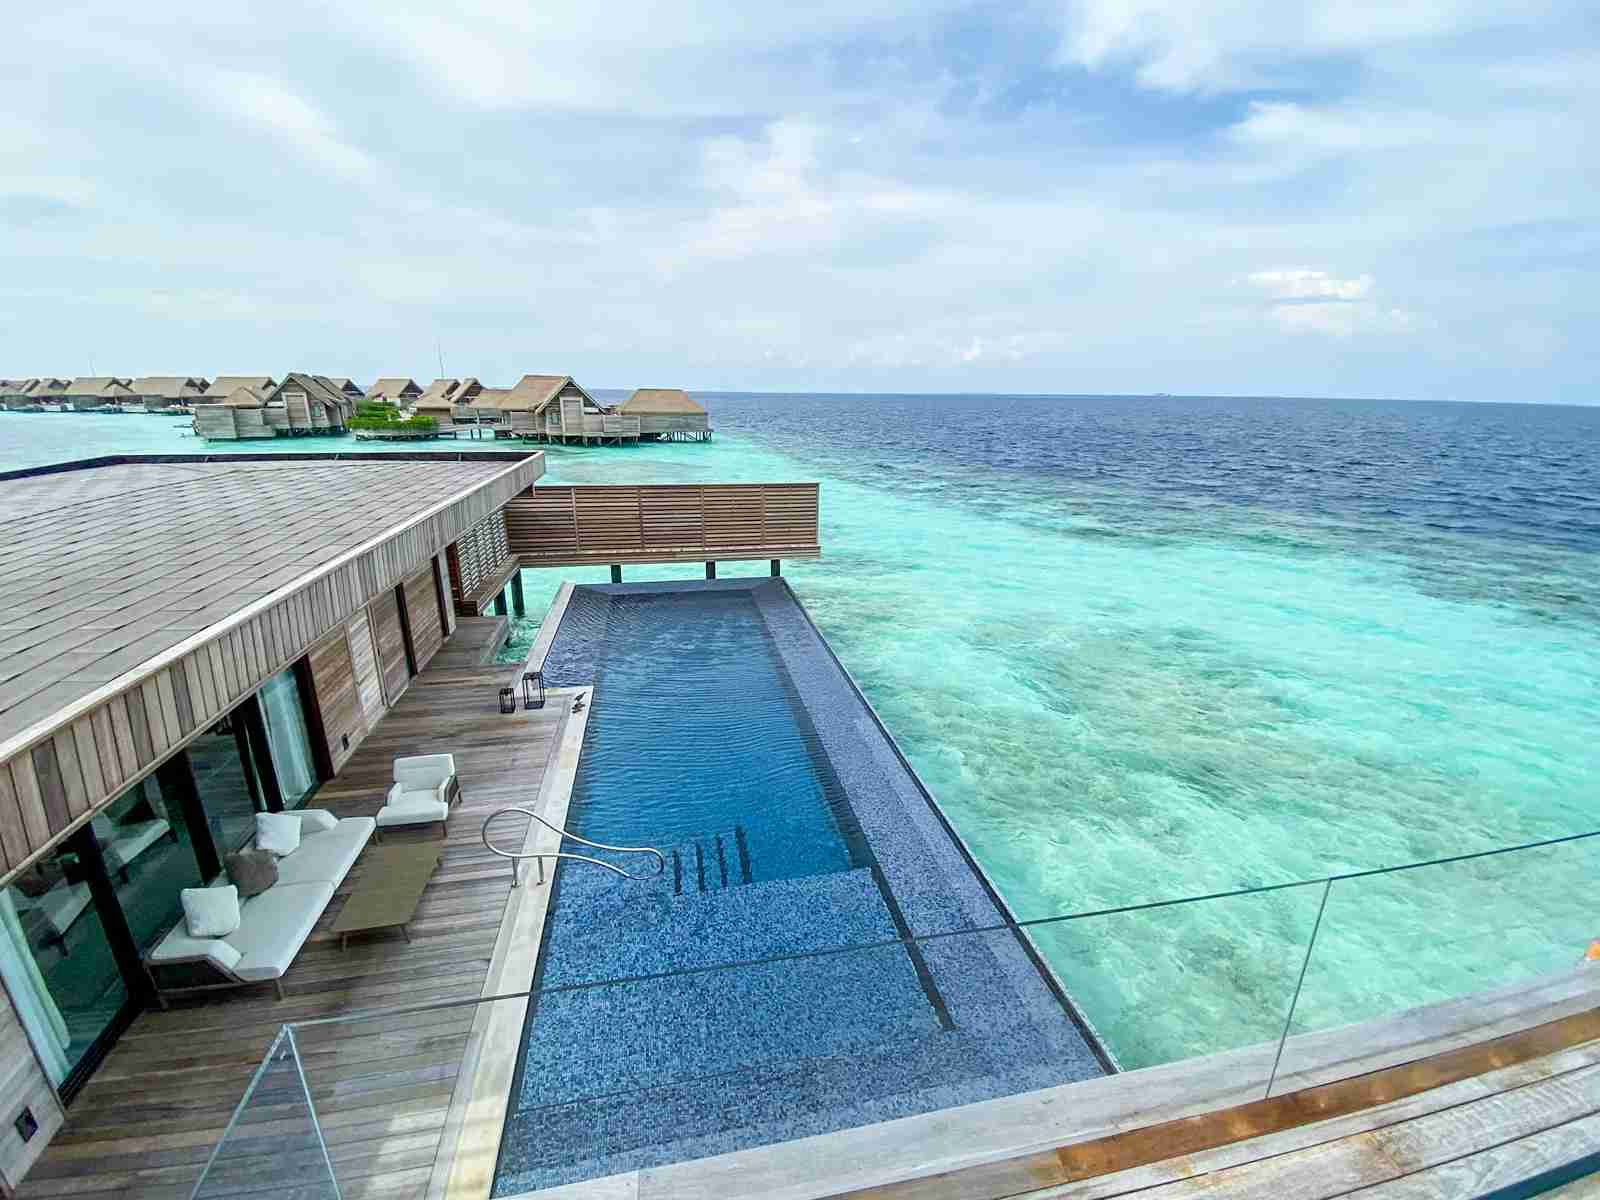 Waldorf Astoria Maldives (Photo by Brian Kelly/The Points Guy)